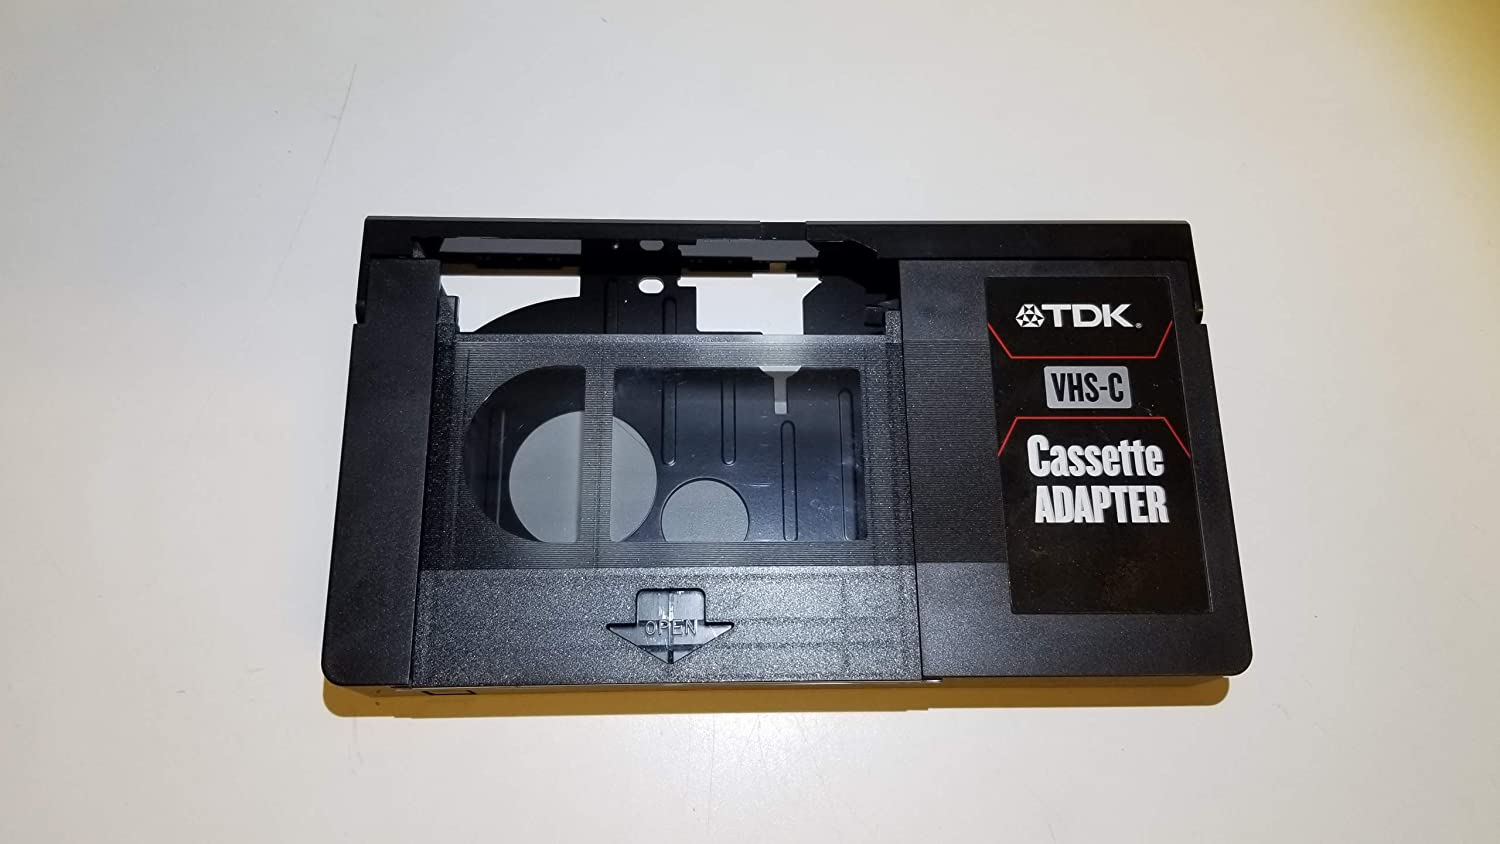 Amazon Com Tdk Vcl Cabh Vhs C Cassette Adapter Discontinued By Manufacturer Blank Vhs C Tapes Camera Photo